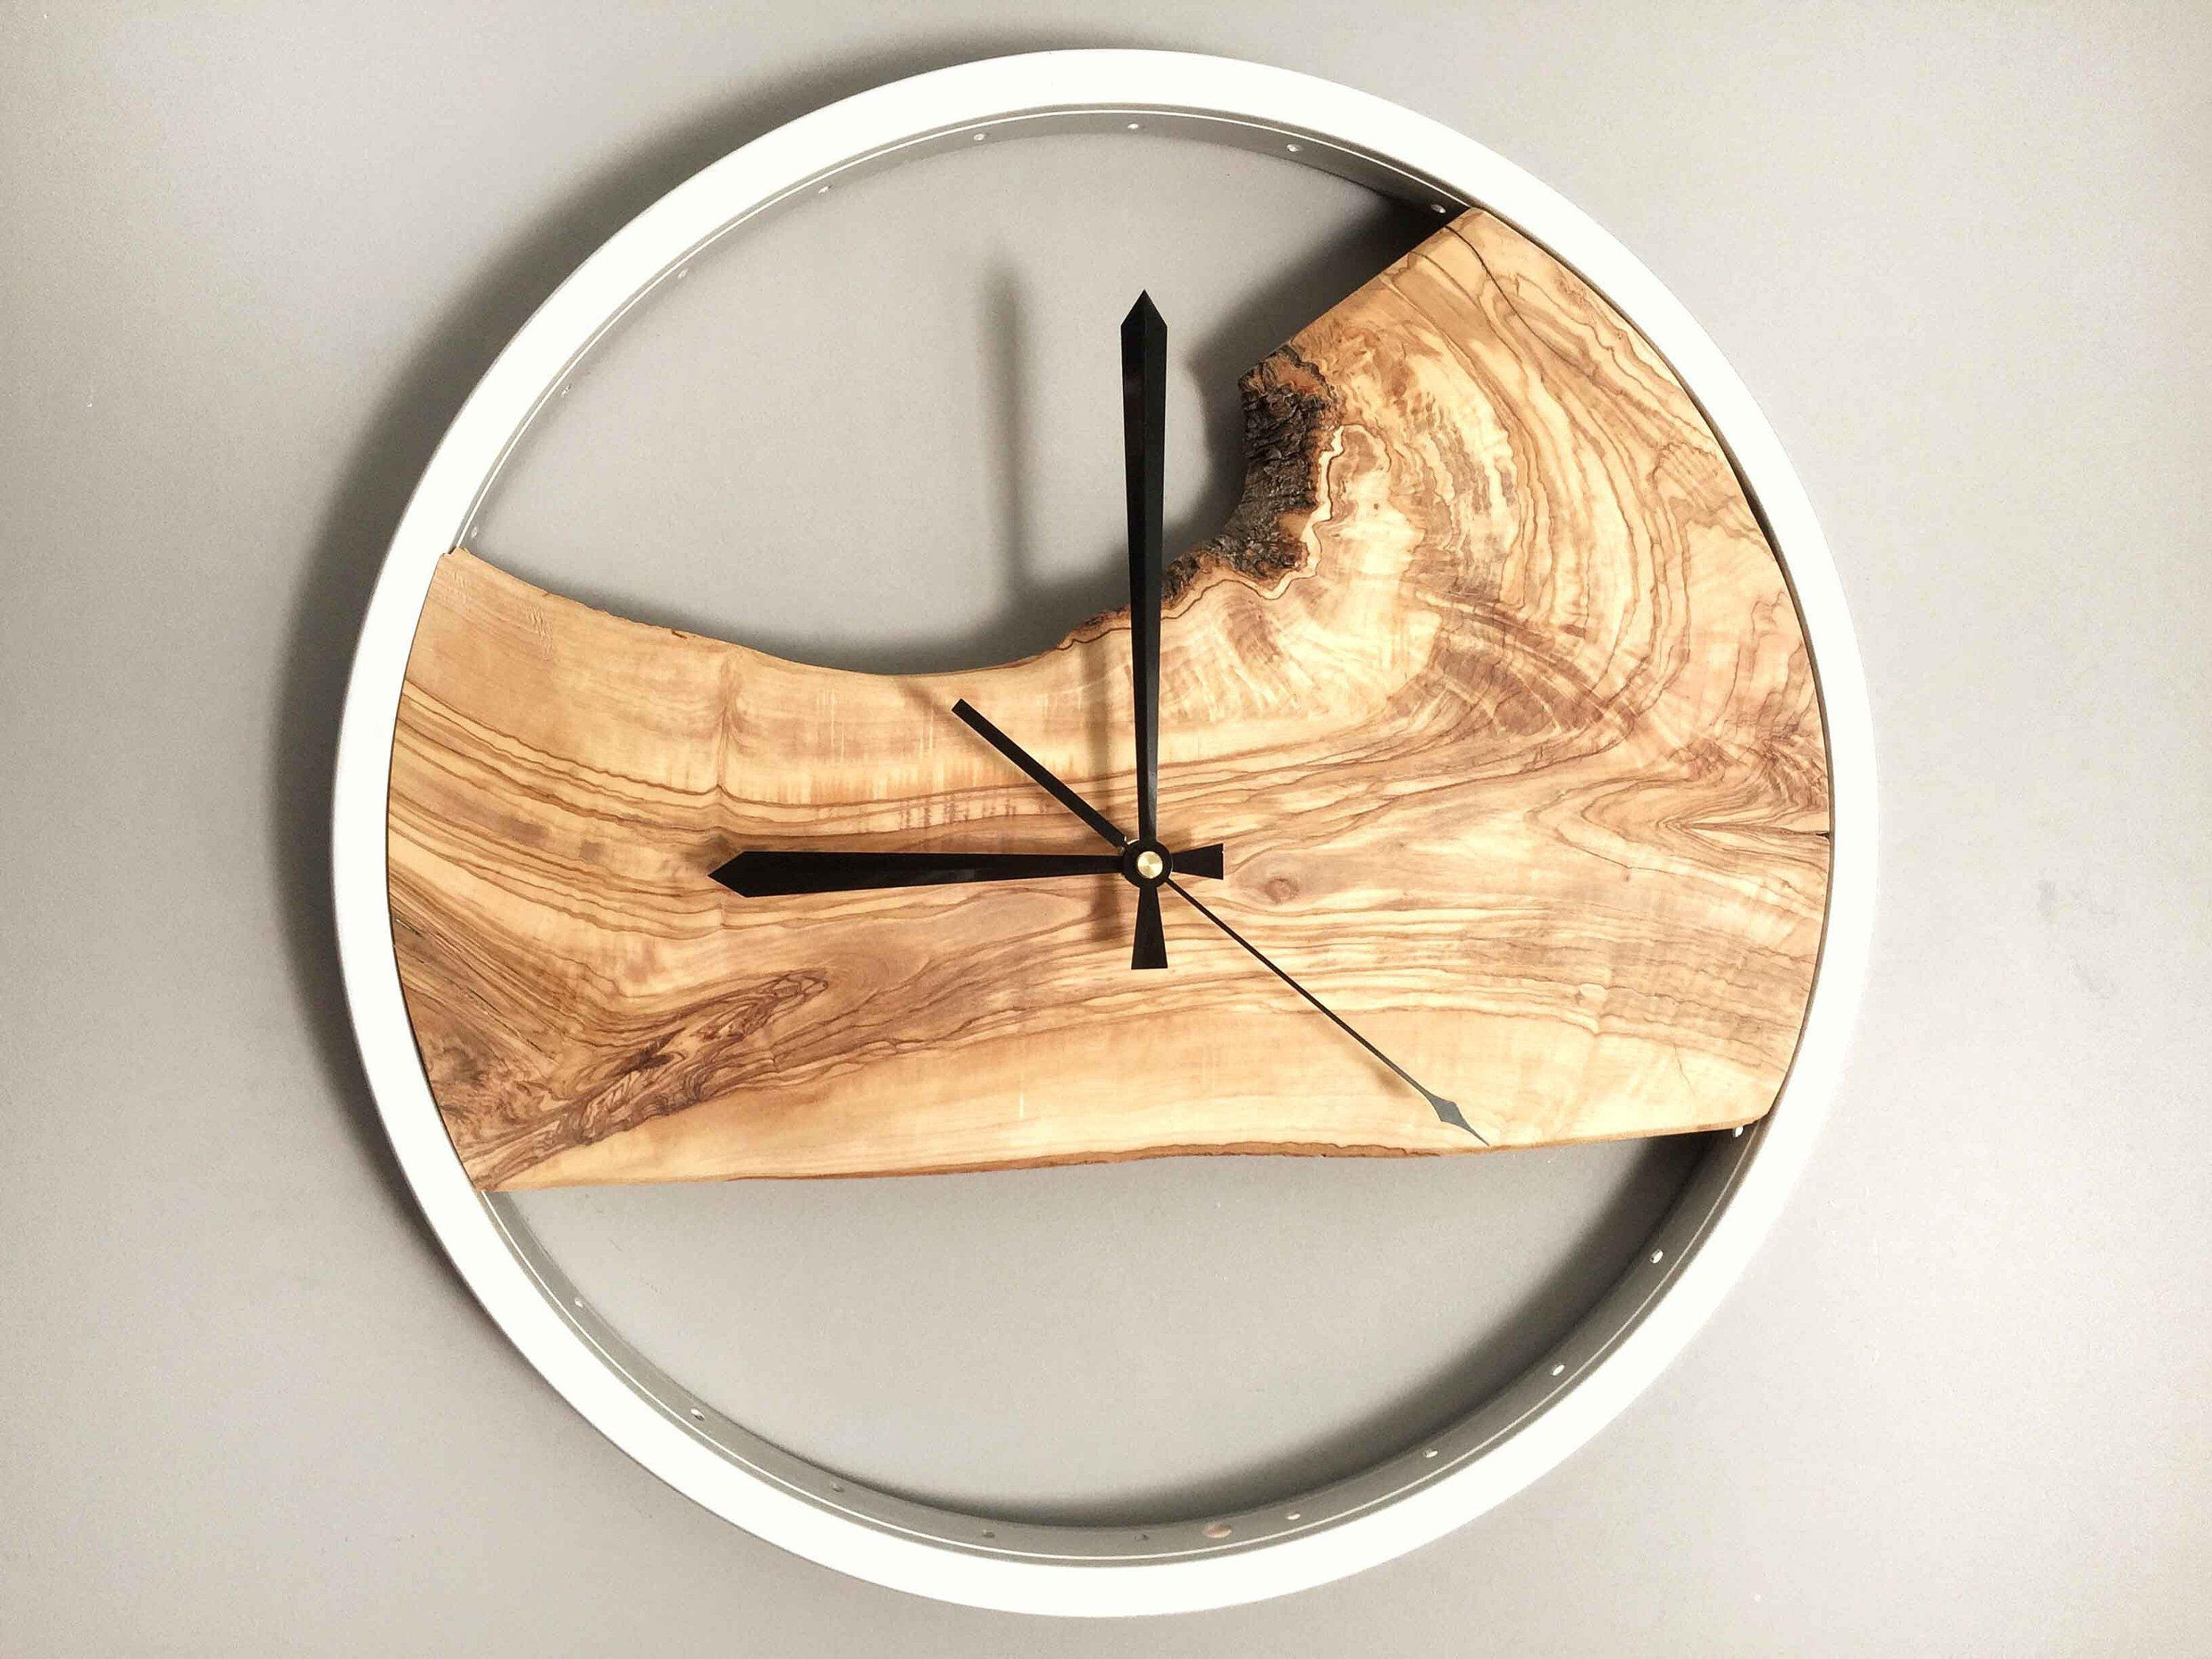 Bike Wood Clock Wooden Wall Clock Wood Wall Clock Modern Wood Clock Large Clock Wall Unique Wall Clock Wood Live Edge And Steel Frame Wood Wall Clock Wall Clock Wooden Wood